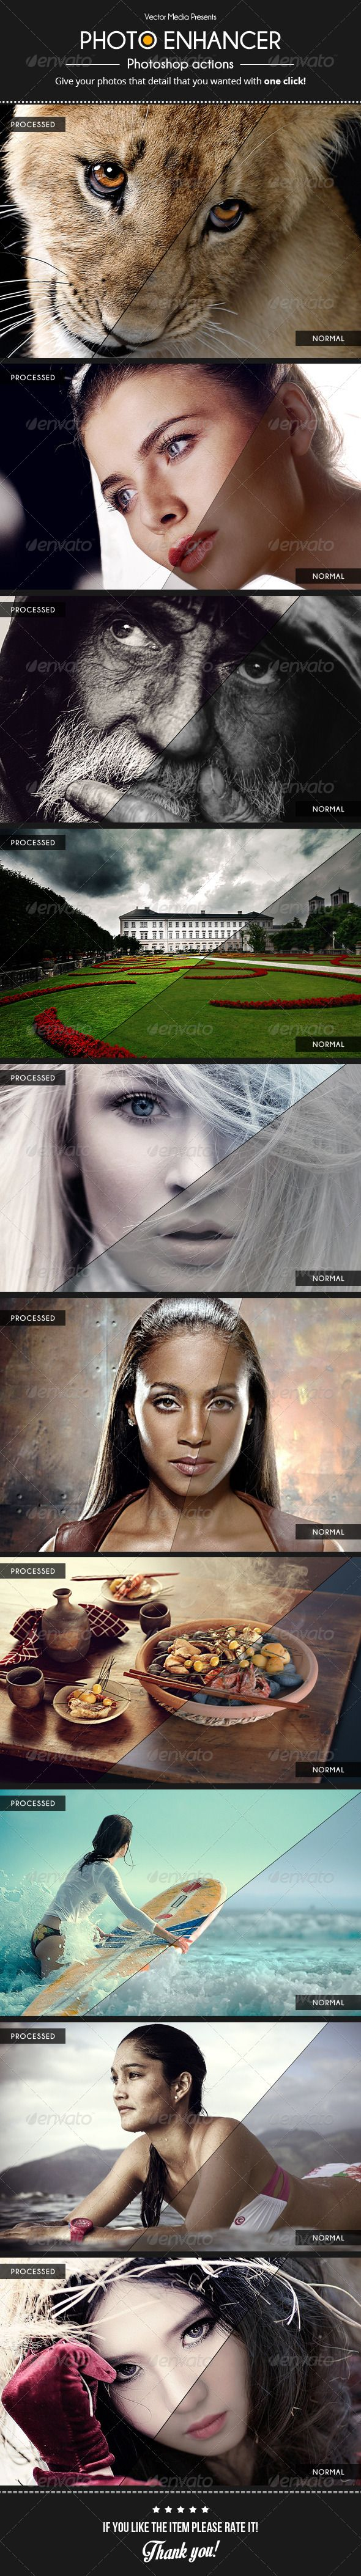 Photo Enhancer - Actions  #GraphicRiver        Photo Enhancer – Actions Features:   10 Professional photoshop actions  100% Editable actions  ATN File  Readme file  Don't forget to rate this item, it helps a lot. Thanks    Enjoy, and happy design!     Created: 23August13 Add-onFilesIncluded: PhotoshopATN WorksWith: JPG #RAW Tags: action #actions #add-on #effect #enhancer #enhancing #fashion #gloss #hdr #landscape #light #lighteffect #lights #nature #photo #photoenhancer #photography…